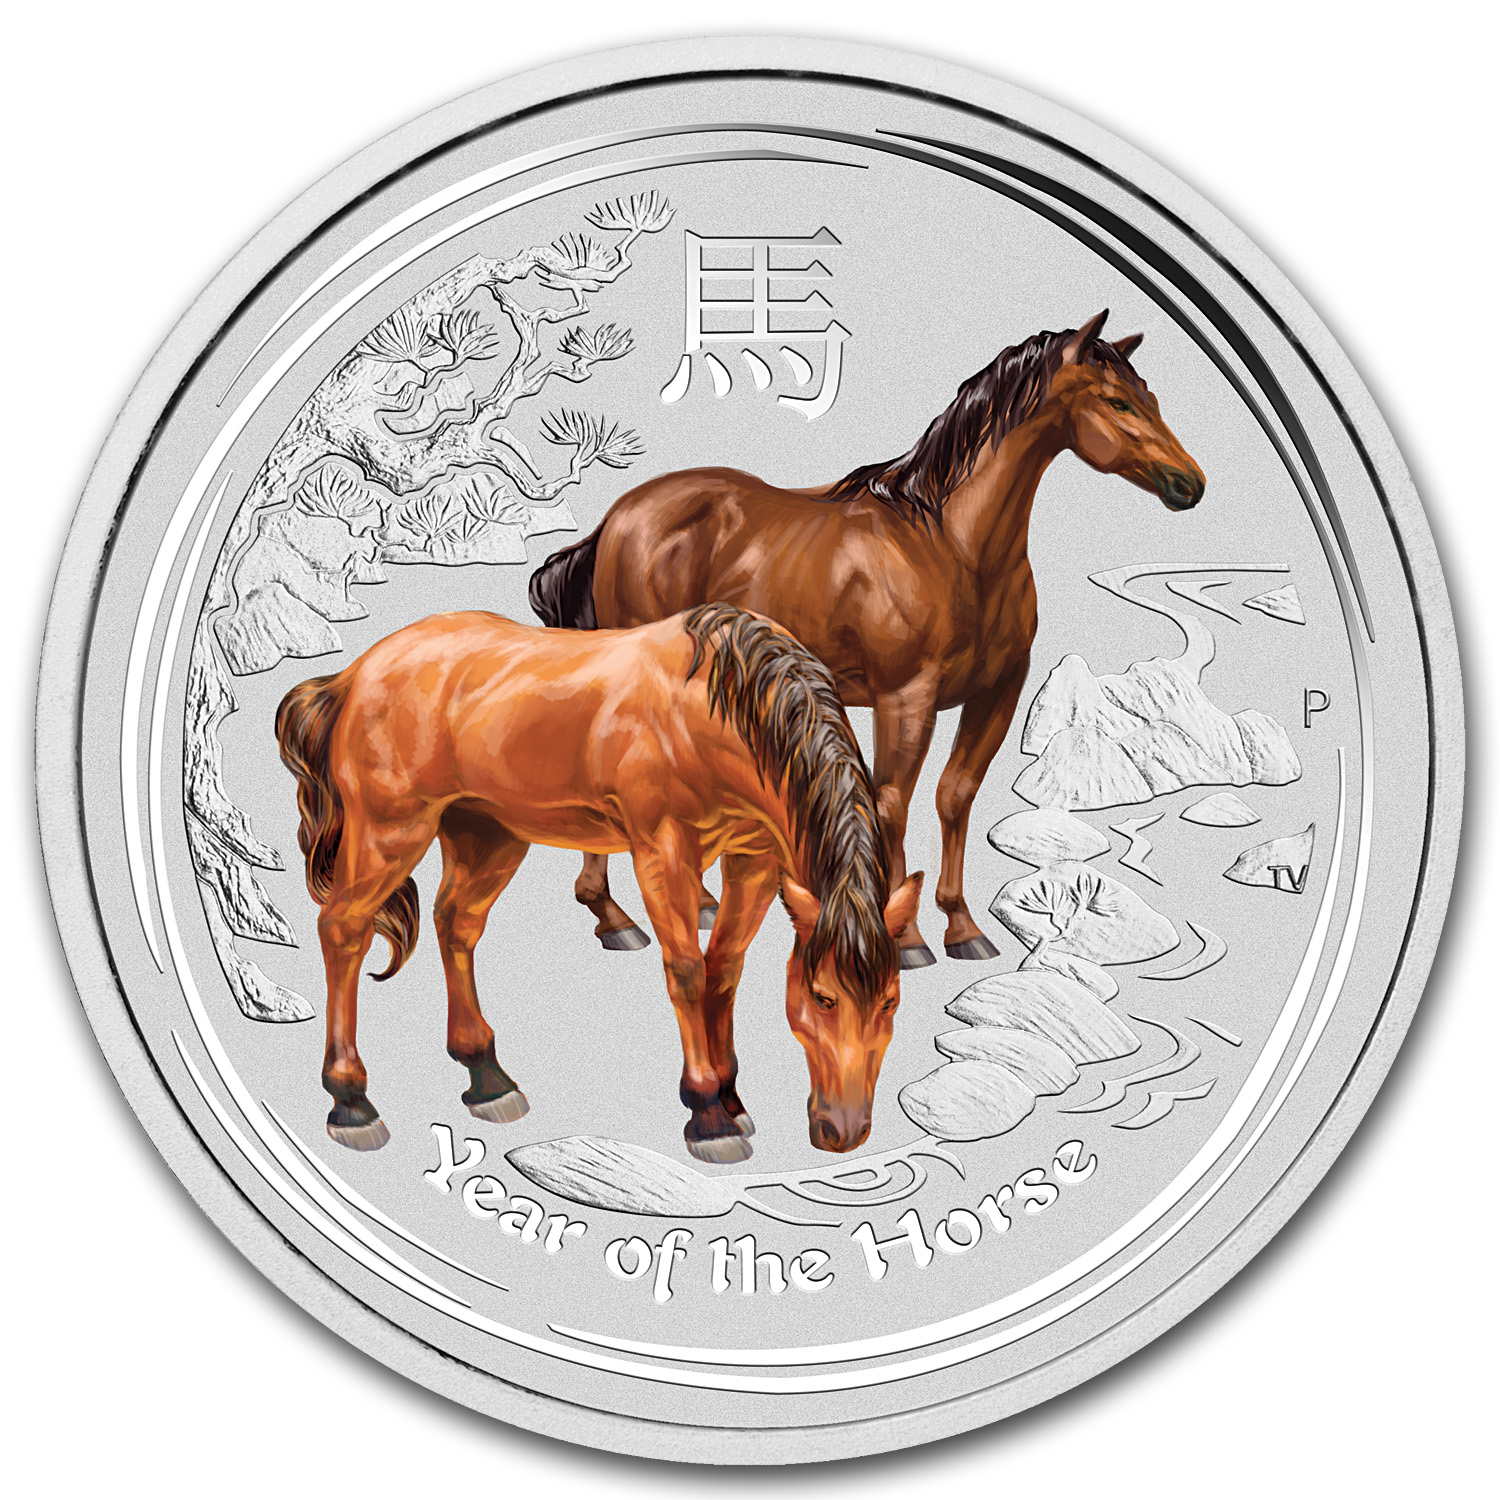 2014 Australia 2 oz Silver Year of the Horse (Colorized)